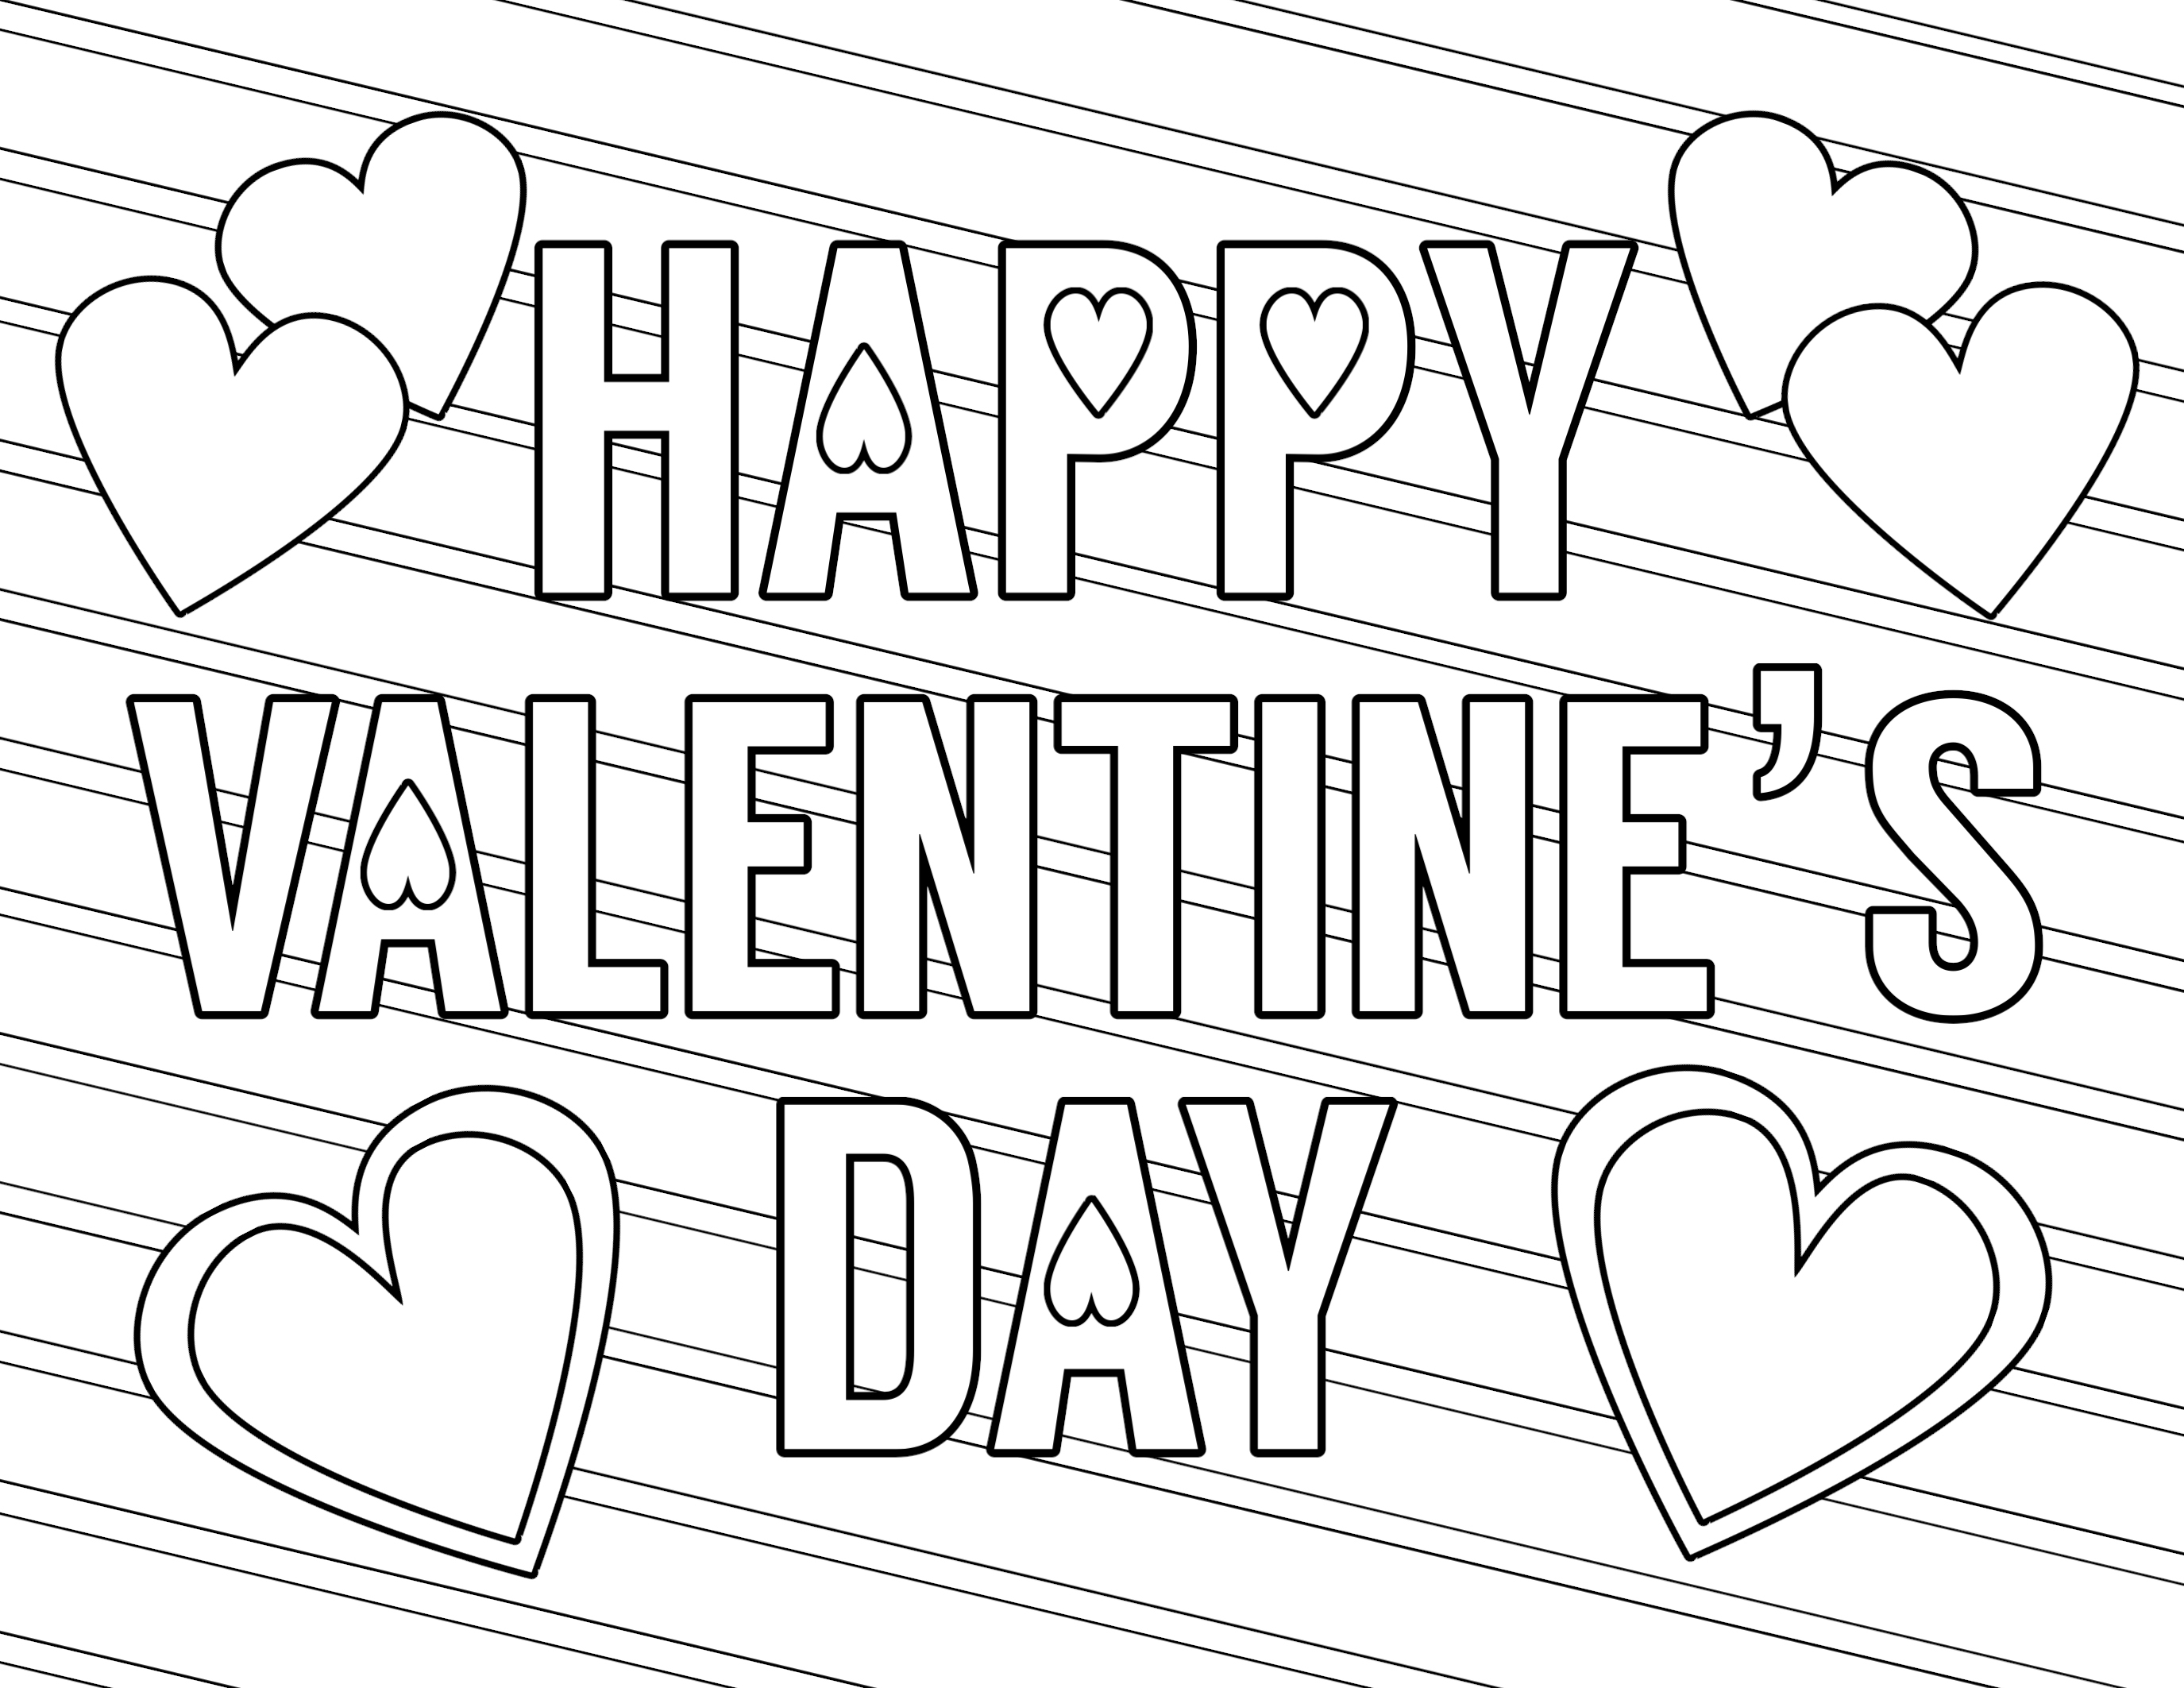 Coloring Pages : Valentines Day Coloring Page Pages Of Free - Free Printable Valentines Day Coloring Pages